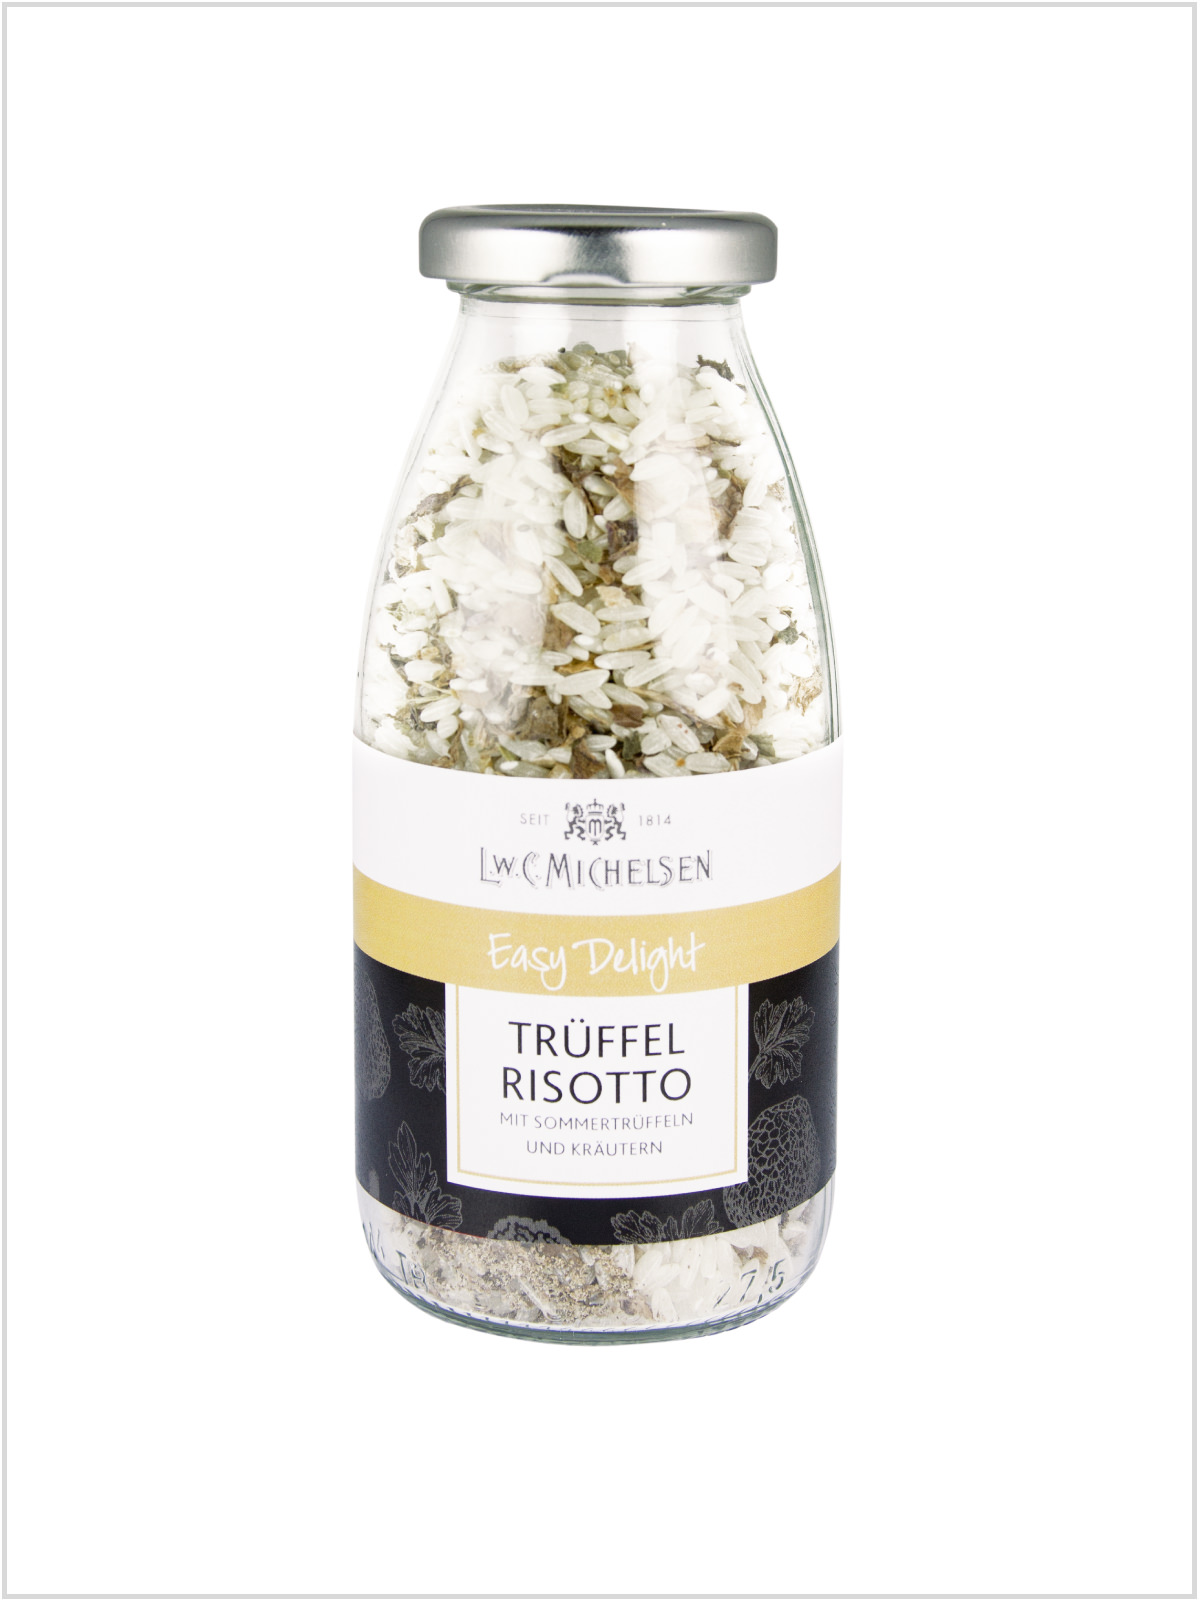 frederickandsophie-gourmet-lwcmichelsen-truffle-risotto